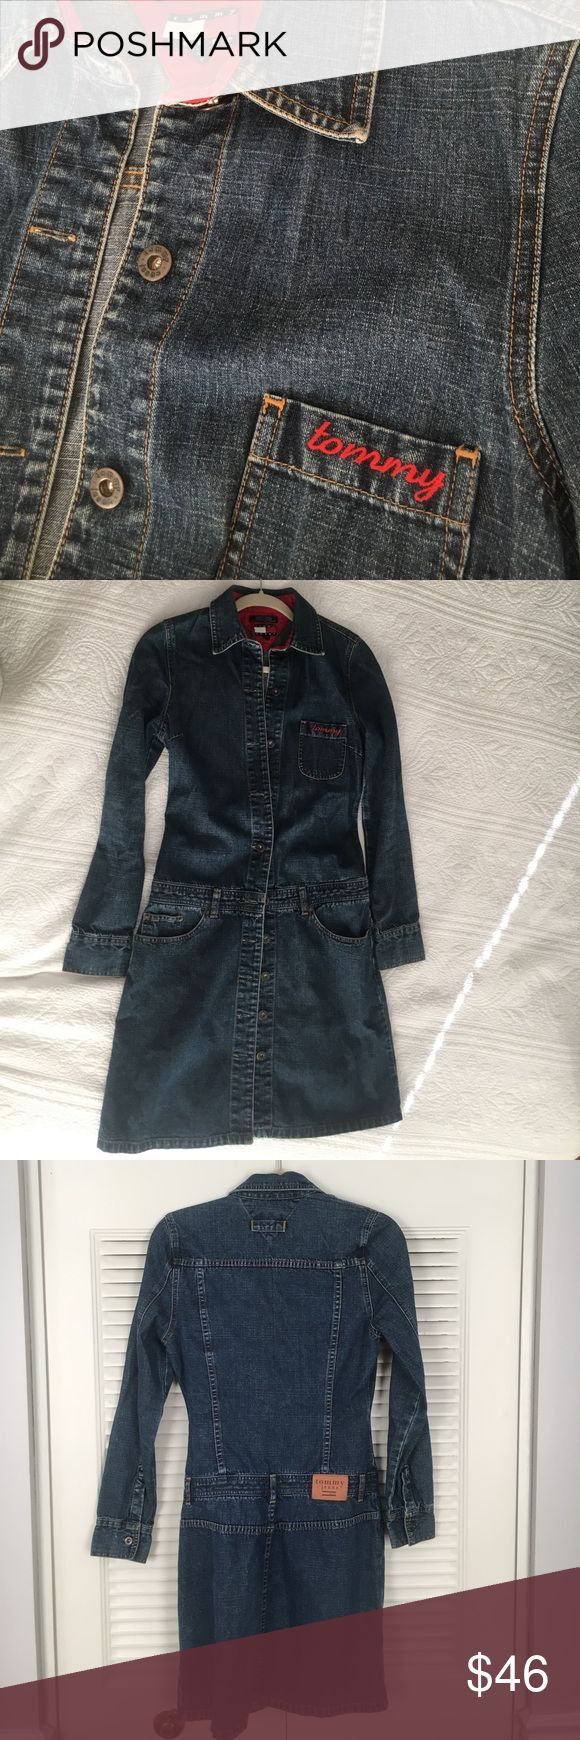 """Vintage Tommy Hilfiger Women's Denim Dress Vintage Tommy Hilfiger """"Tommy Jeans"""" Long sleeve denim dress. This dress is is great condition and was rarely worn. Tommy Hilfiger Dresses Midi"""